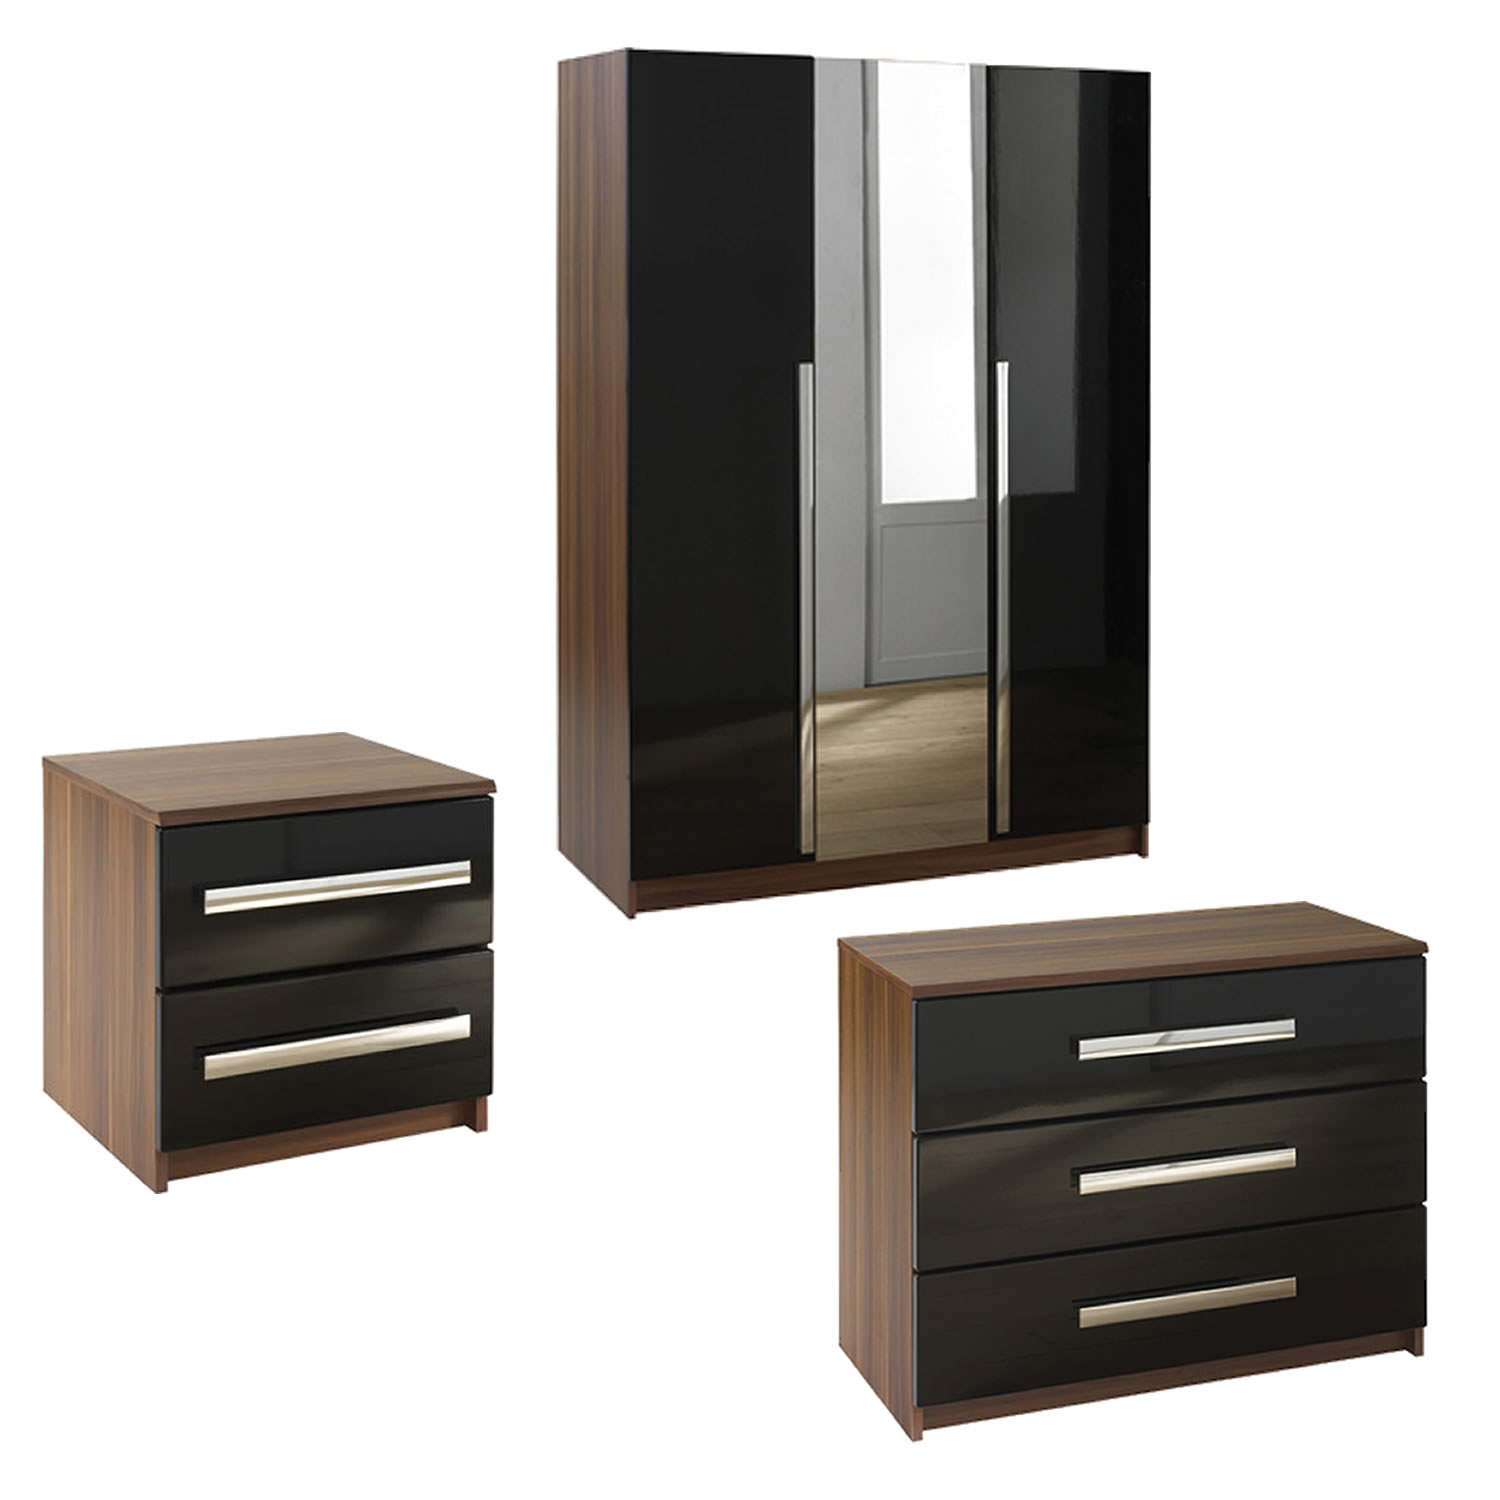 wardrobe sets las vegas 3 door wardrobe, bedside and chest of drawers set - next GSLBLOJ